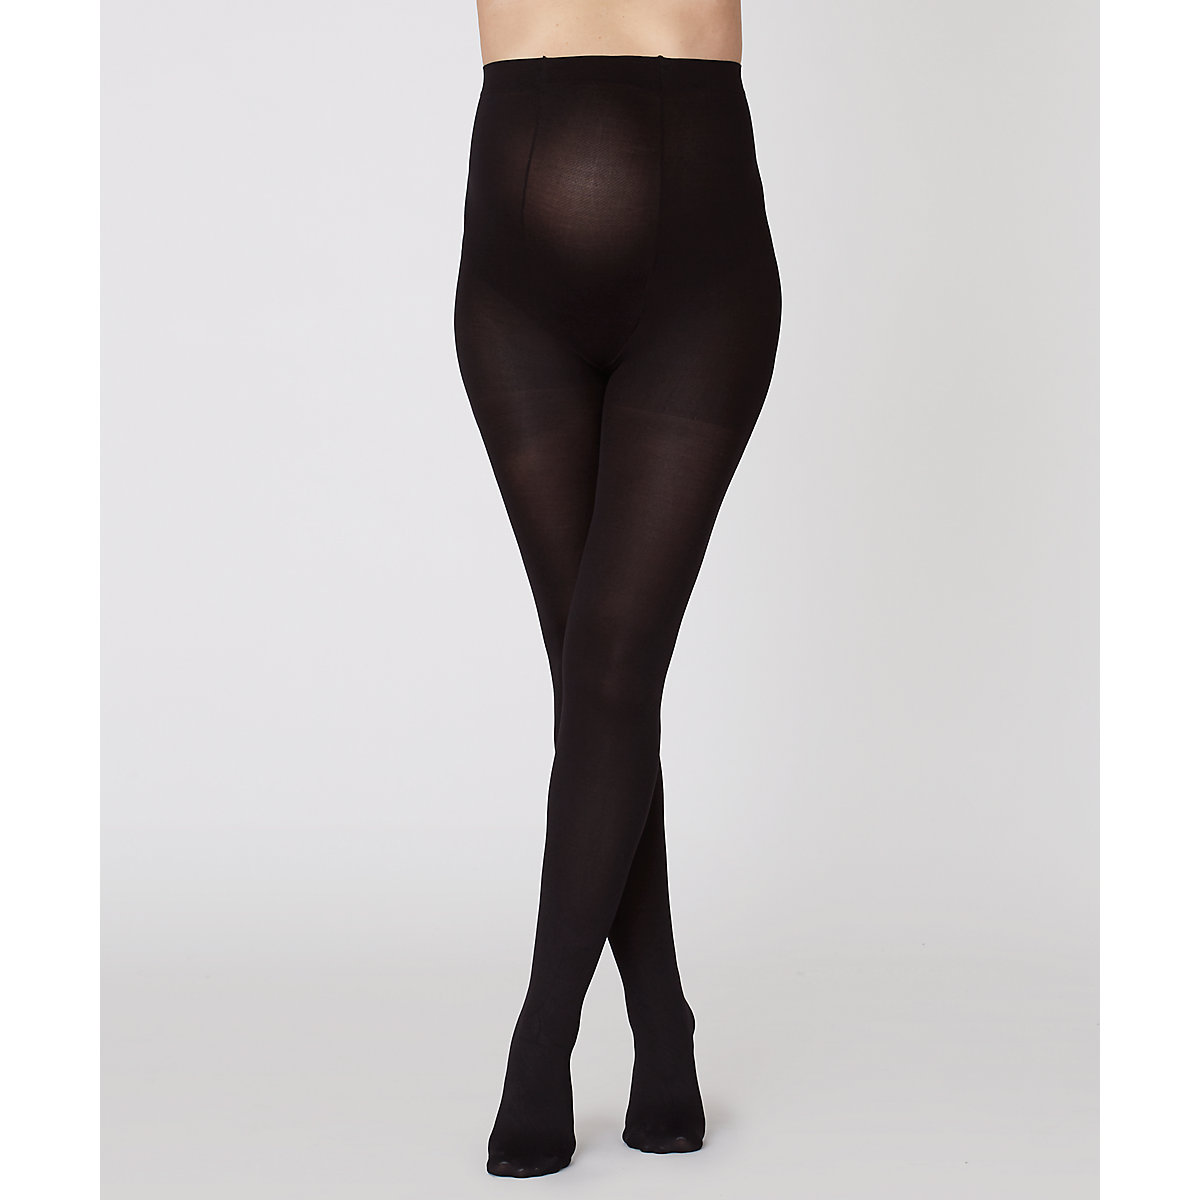 Blooming Marvellous Maternity Tights 60 Denier